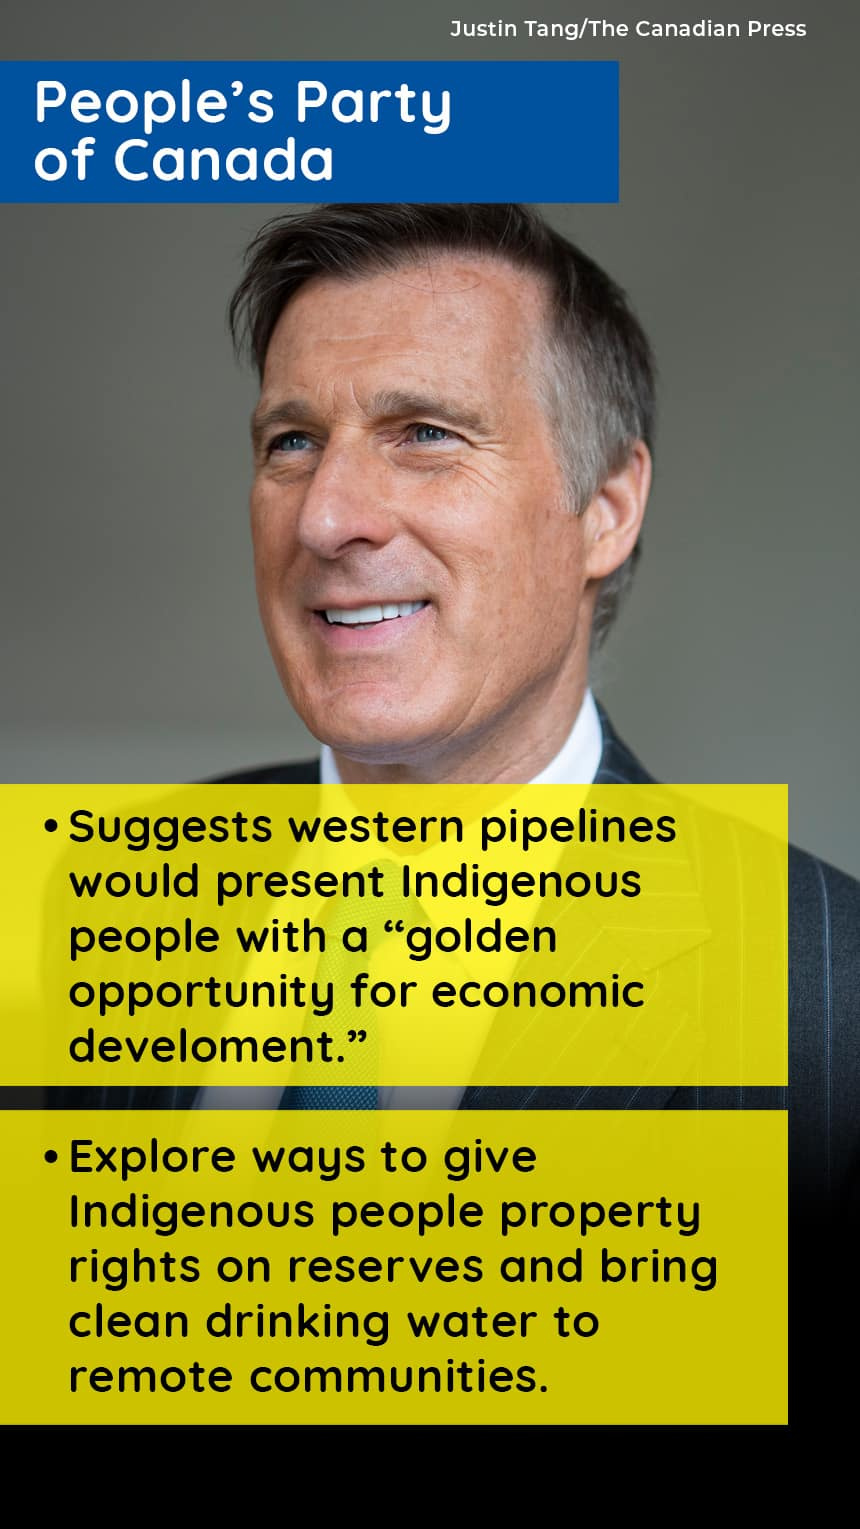 """An image of Maxime Bernier with text that says, PEOPLE'S PARTY OF CANADA Suggests western pipelines would present Indigenous people with a """"golden opportunity for economic development."""" ,Explore ways to give Indigenous people property rights on reserves and bring clean drinking water to remote communities."""